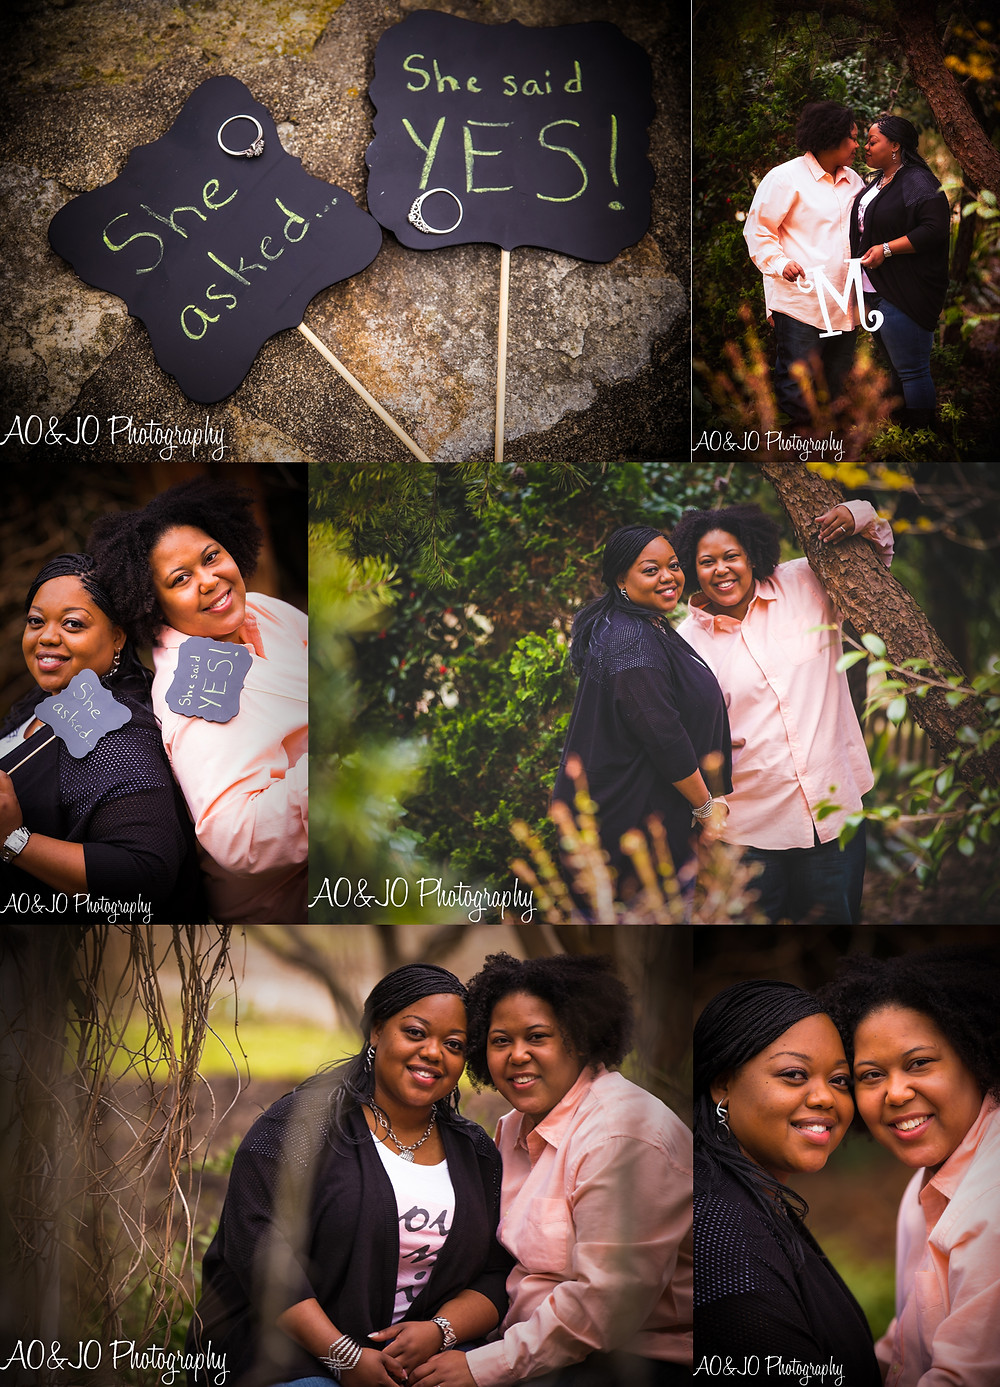 AOJOPhotography-Raleigh-Wedding-Photography 2.jpg